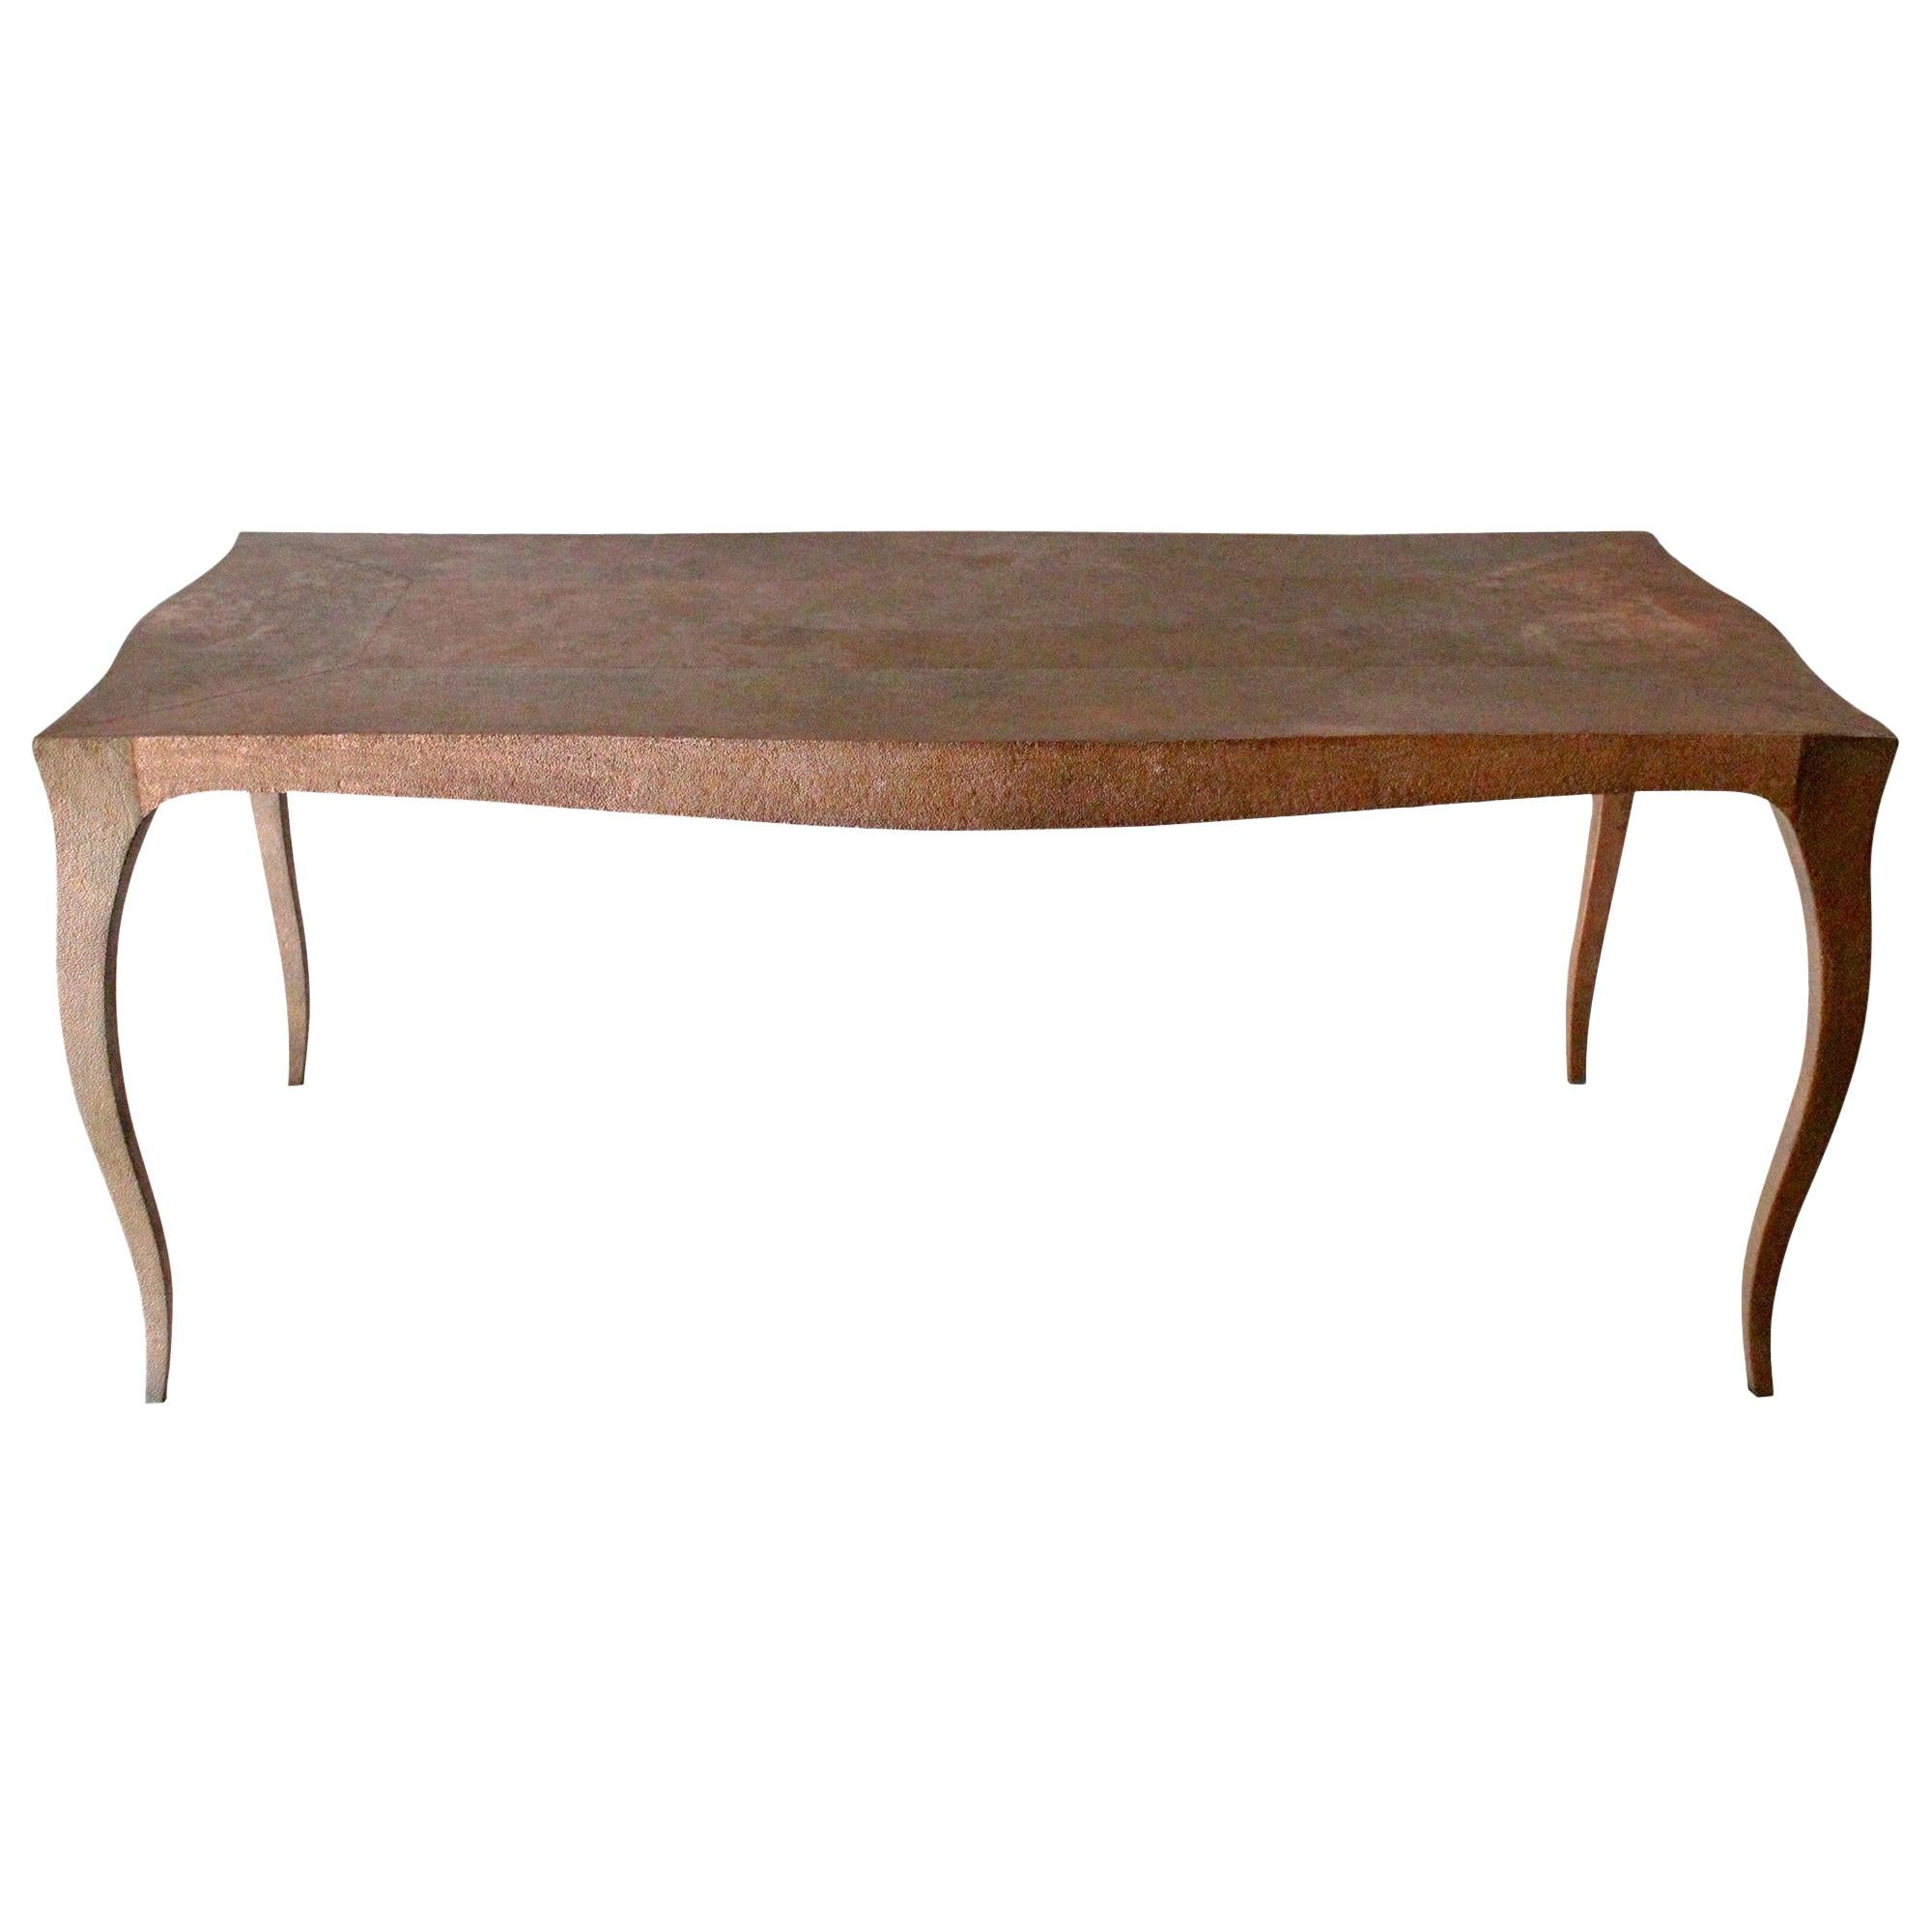 Louise Dining Table in Hammered Copper Over Teak by Paul Mathieu for Stephanie